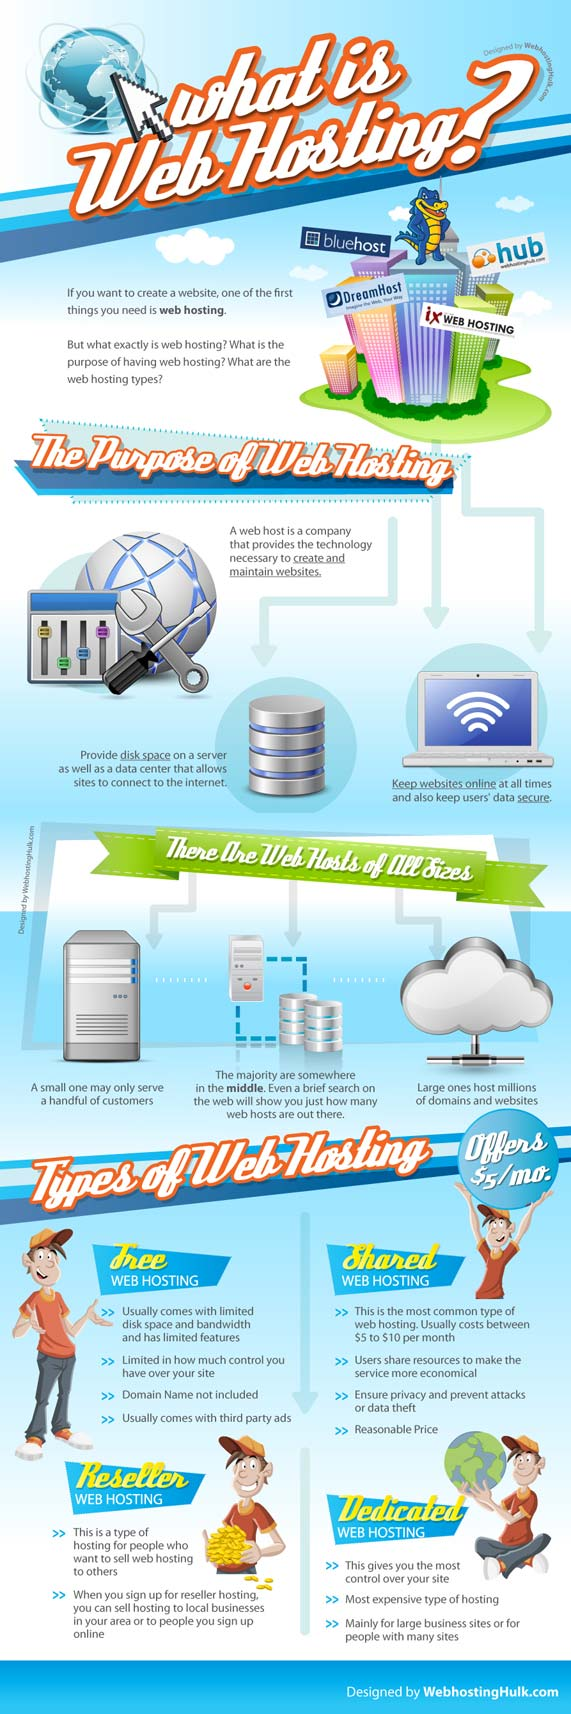 Detailed information about different webhosting types